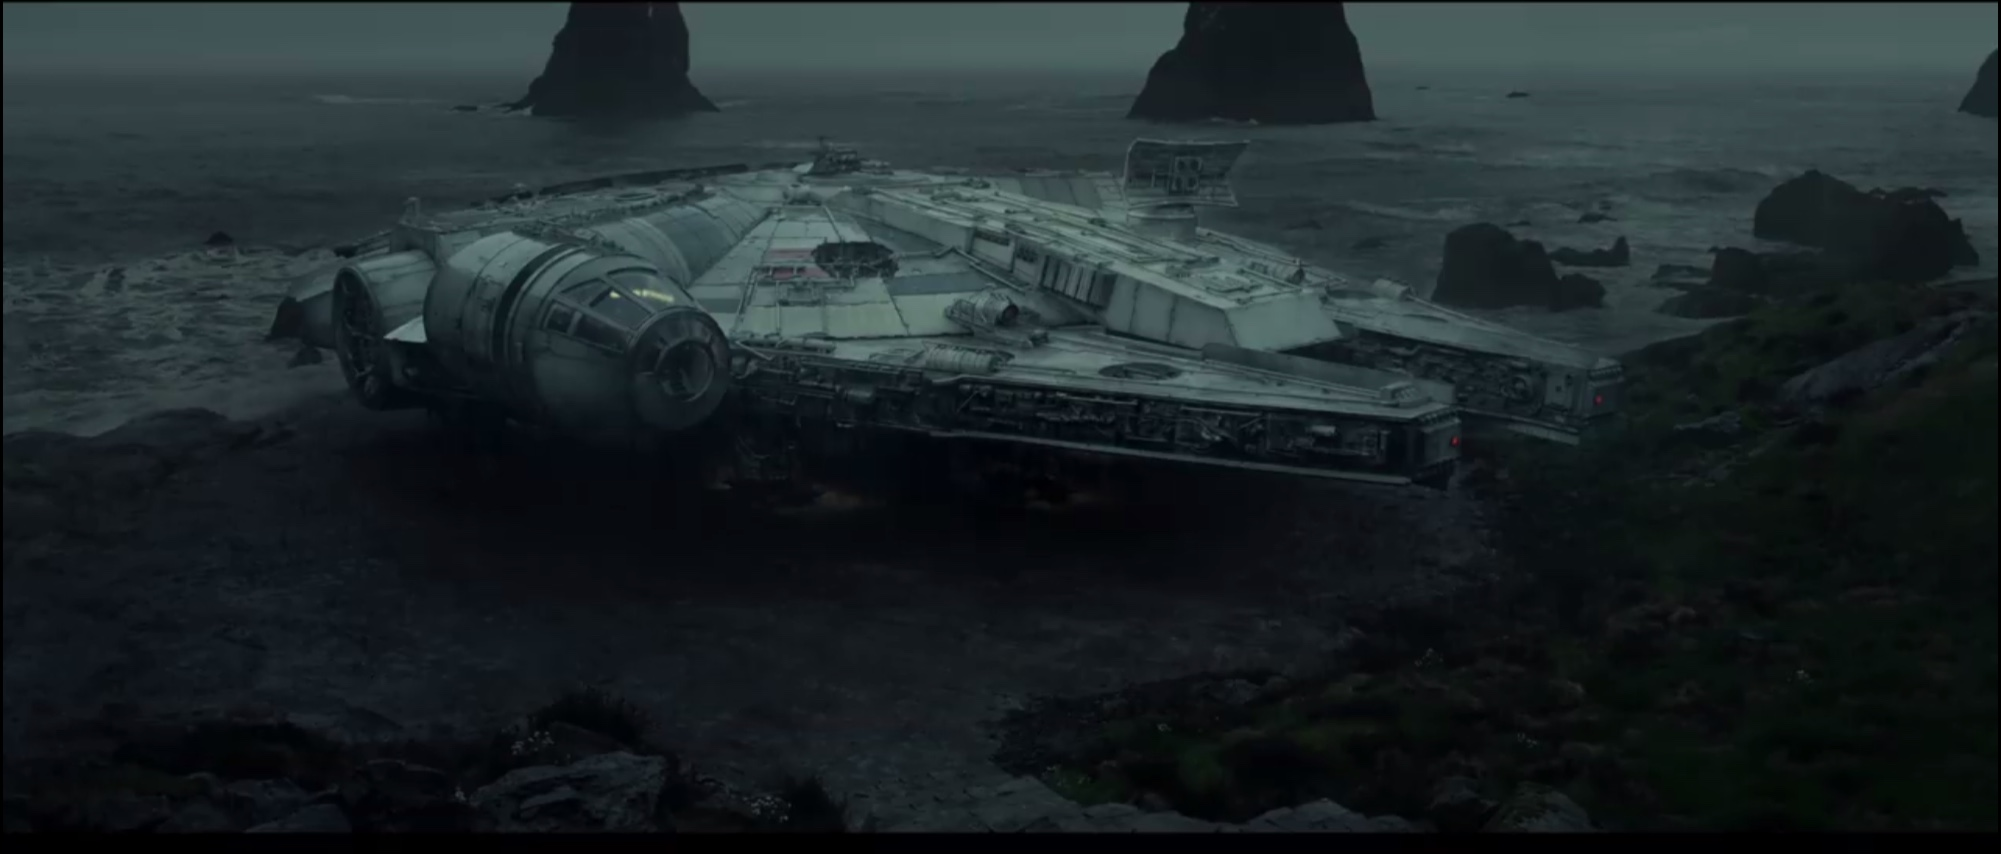 Millennium Falcon - Star Wars: The Last Jedi